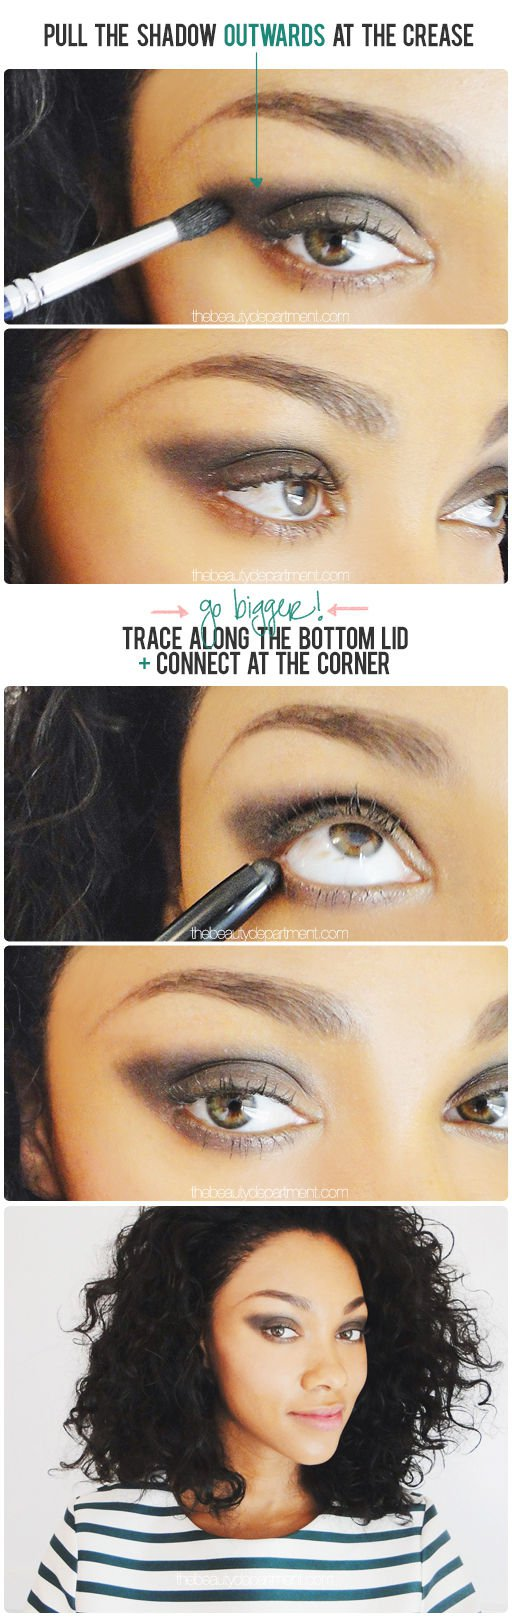 7 Simple But Super Useful Makeup Tips That Will Make Your Beauty Routine Easier